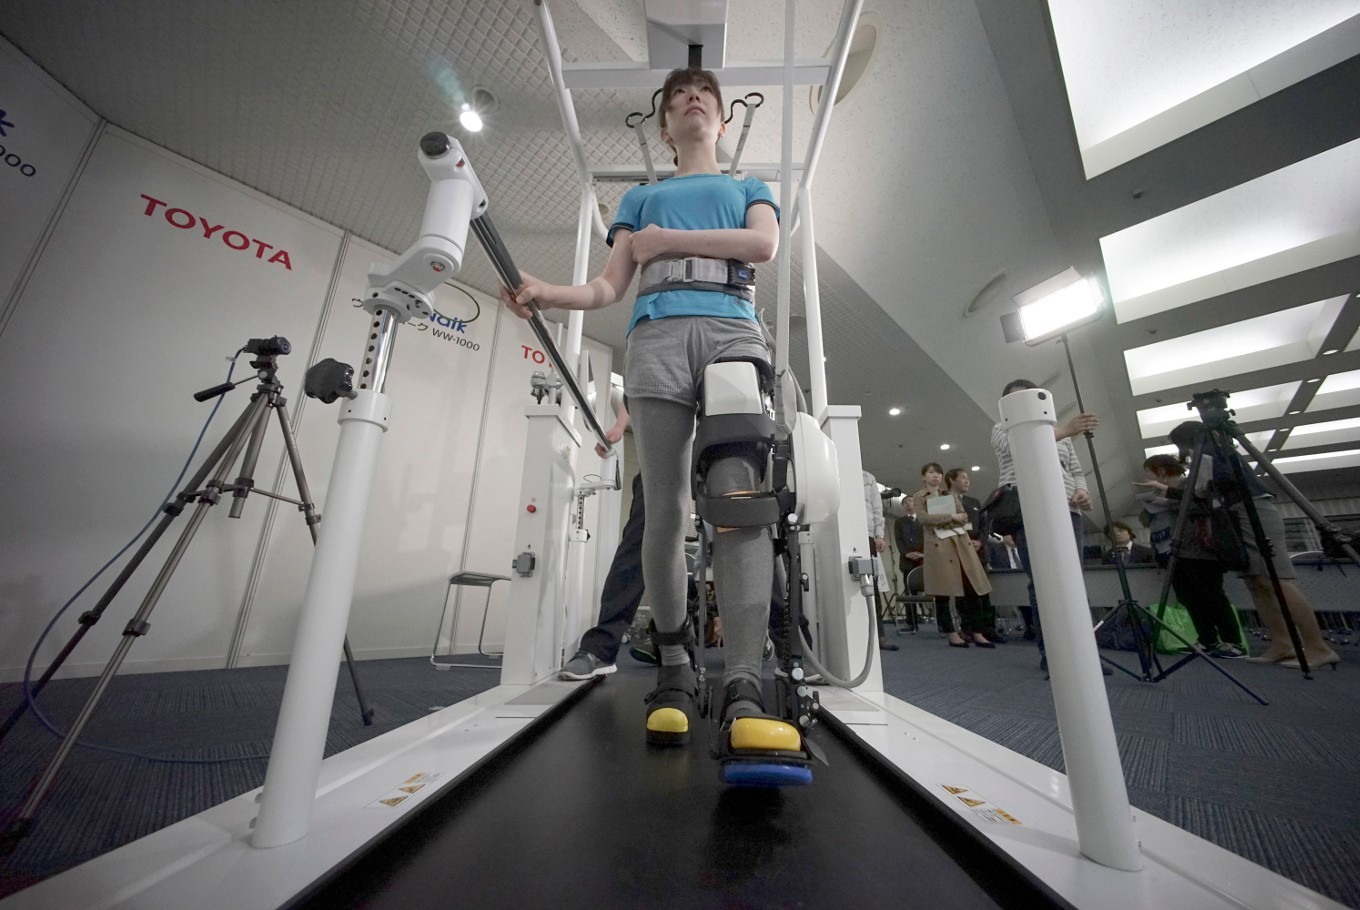 Automobile company design robotic leg braces for the elderly